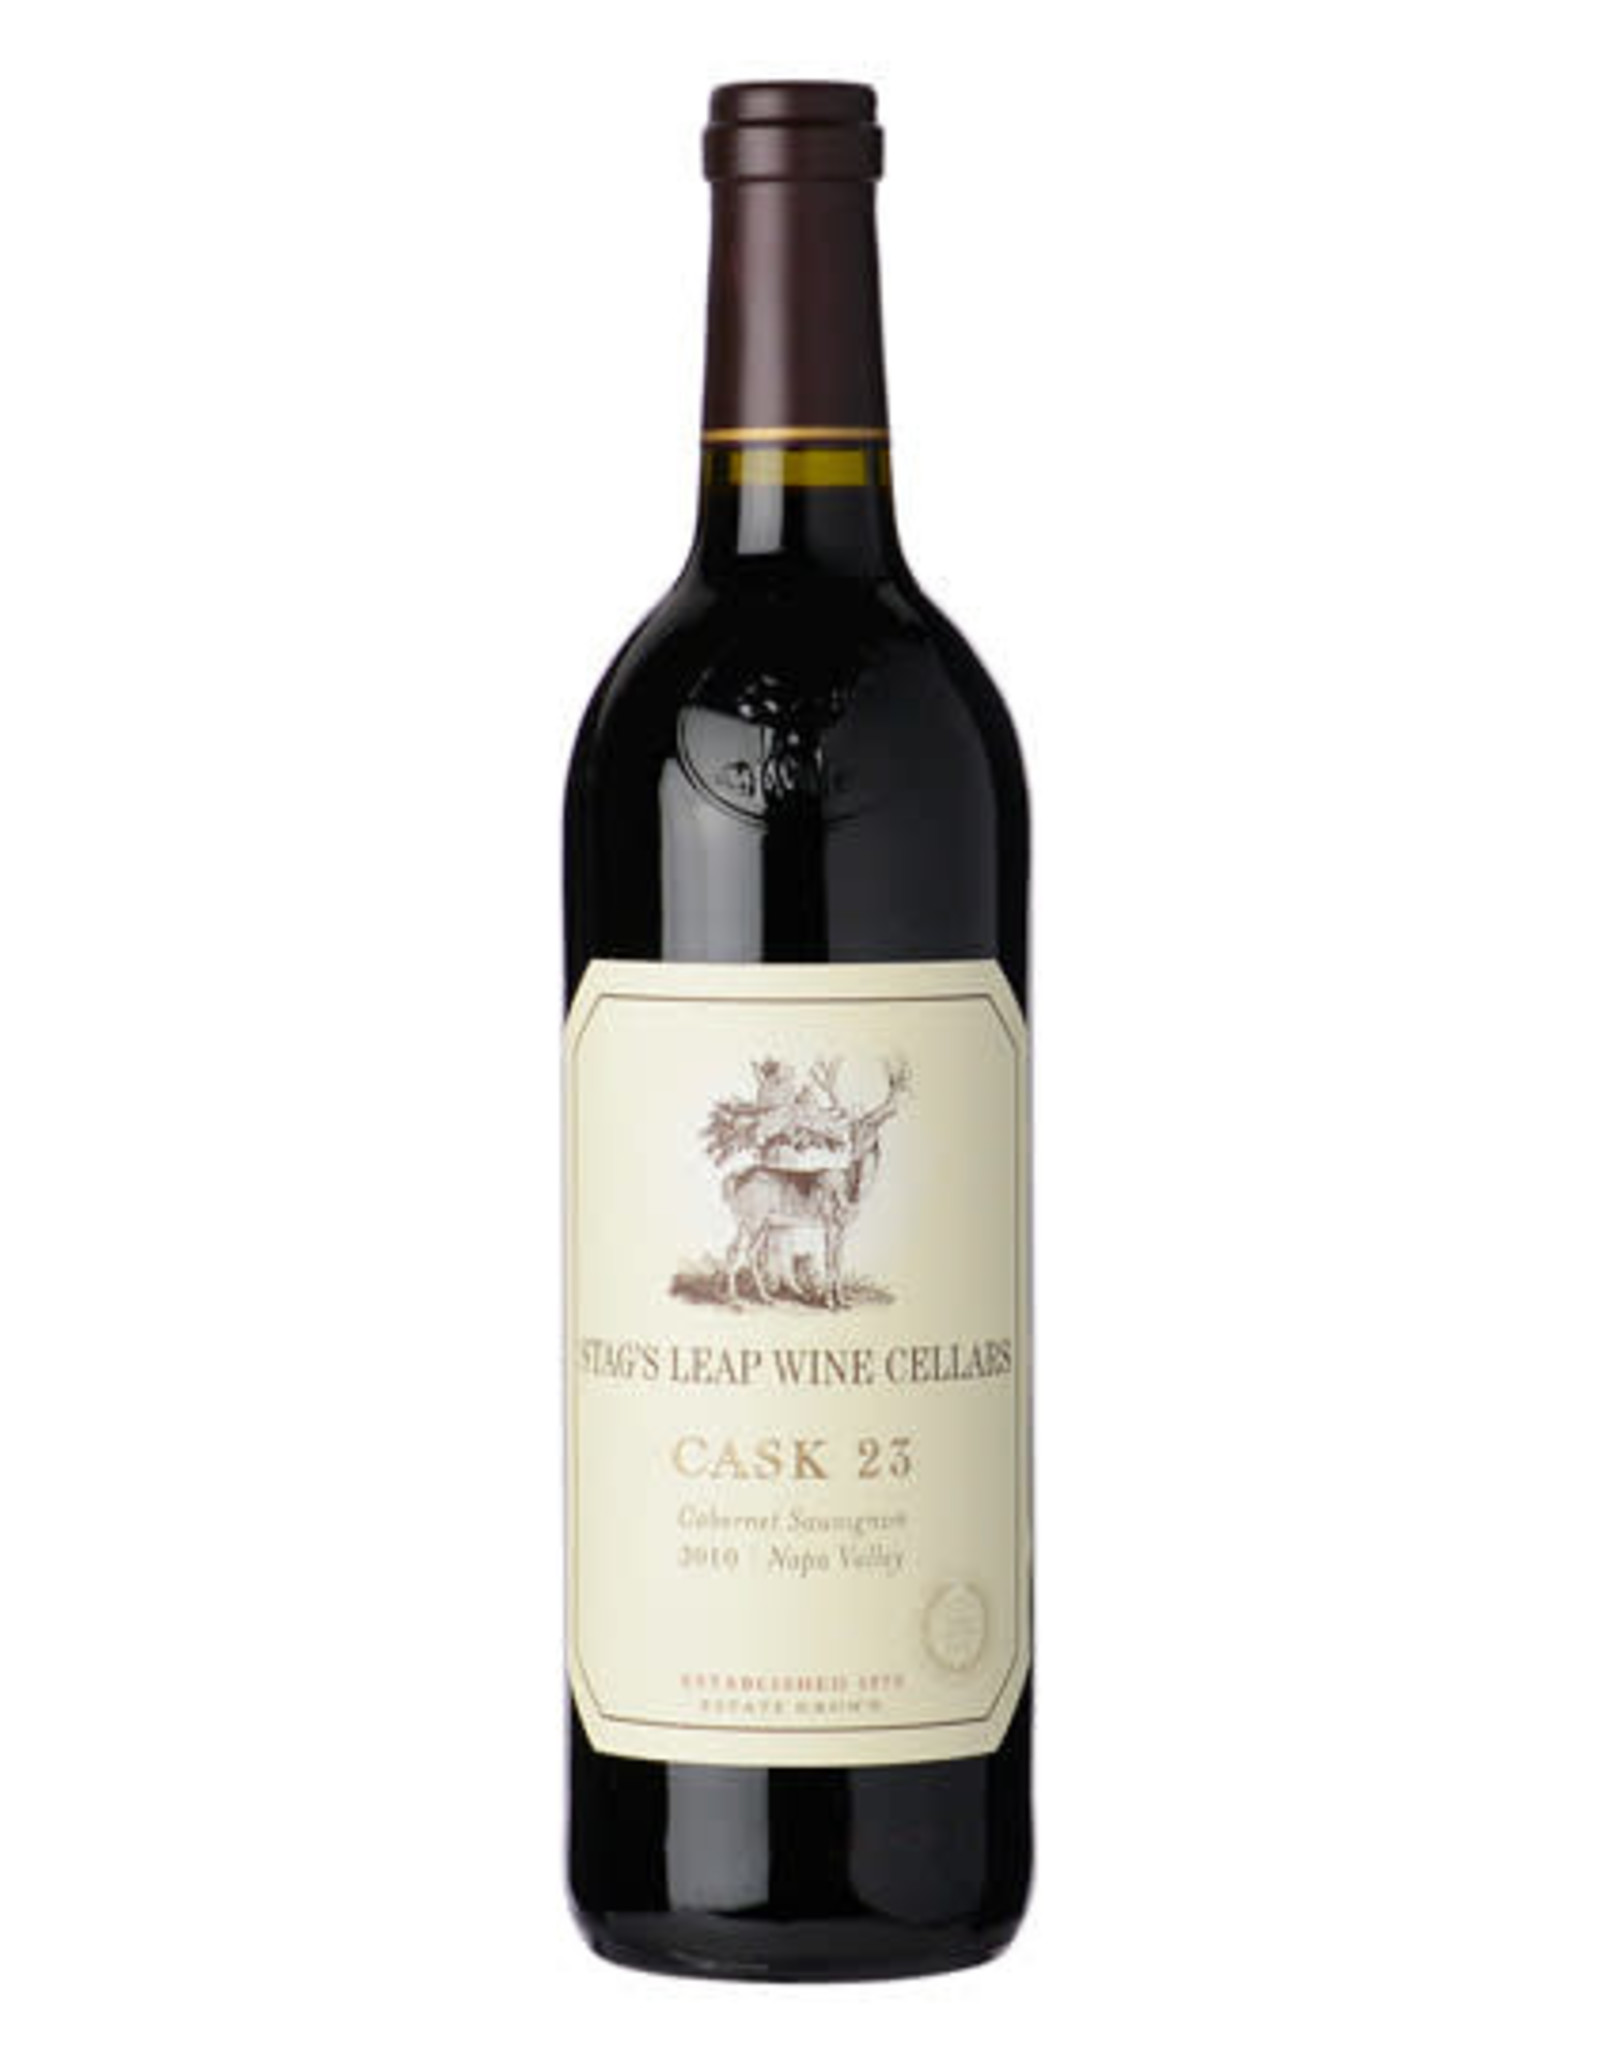 Stags Leap 'Cask 23' Cabernet Sauvignon, Napa Valley 2010